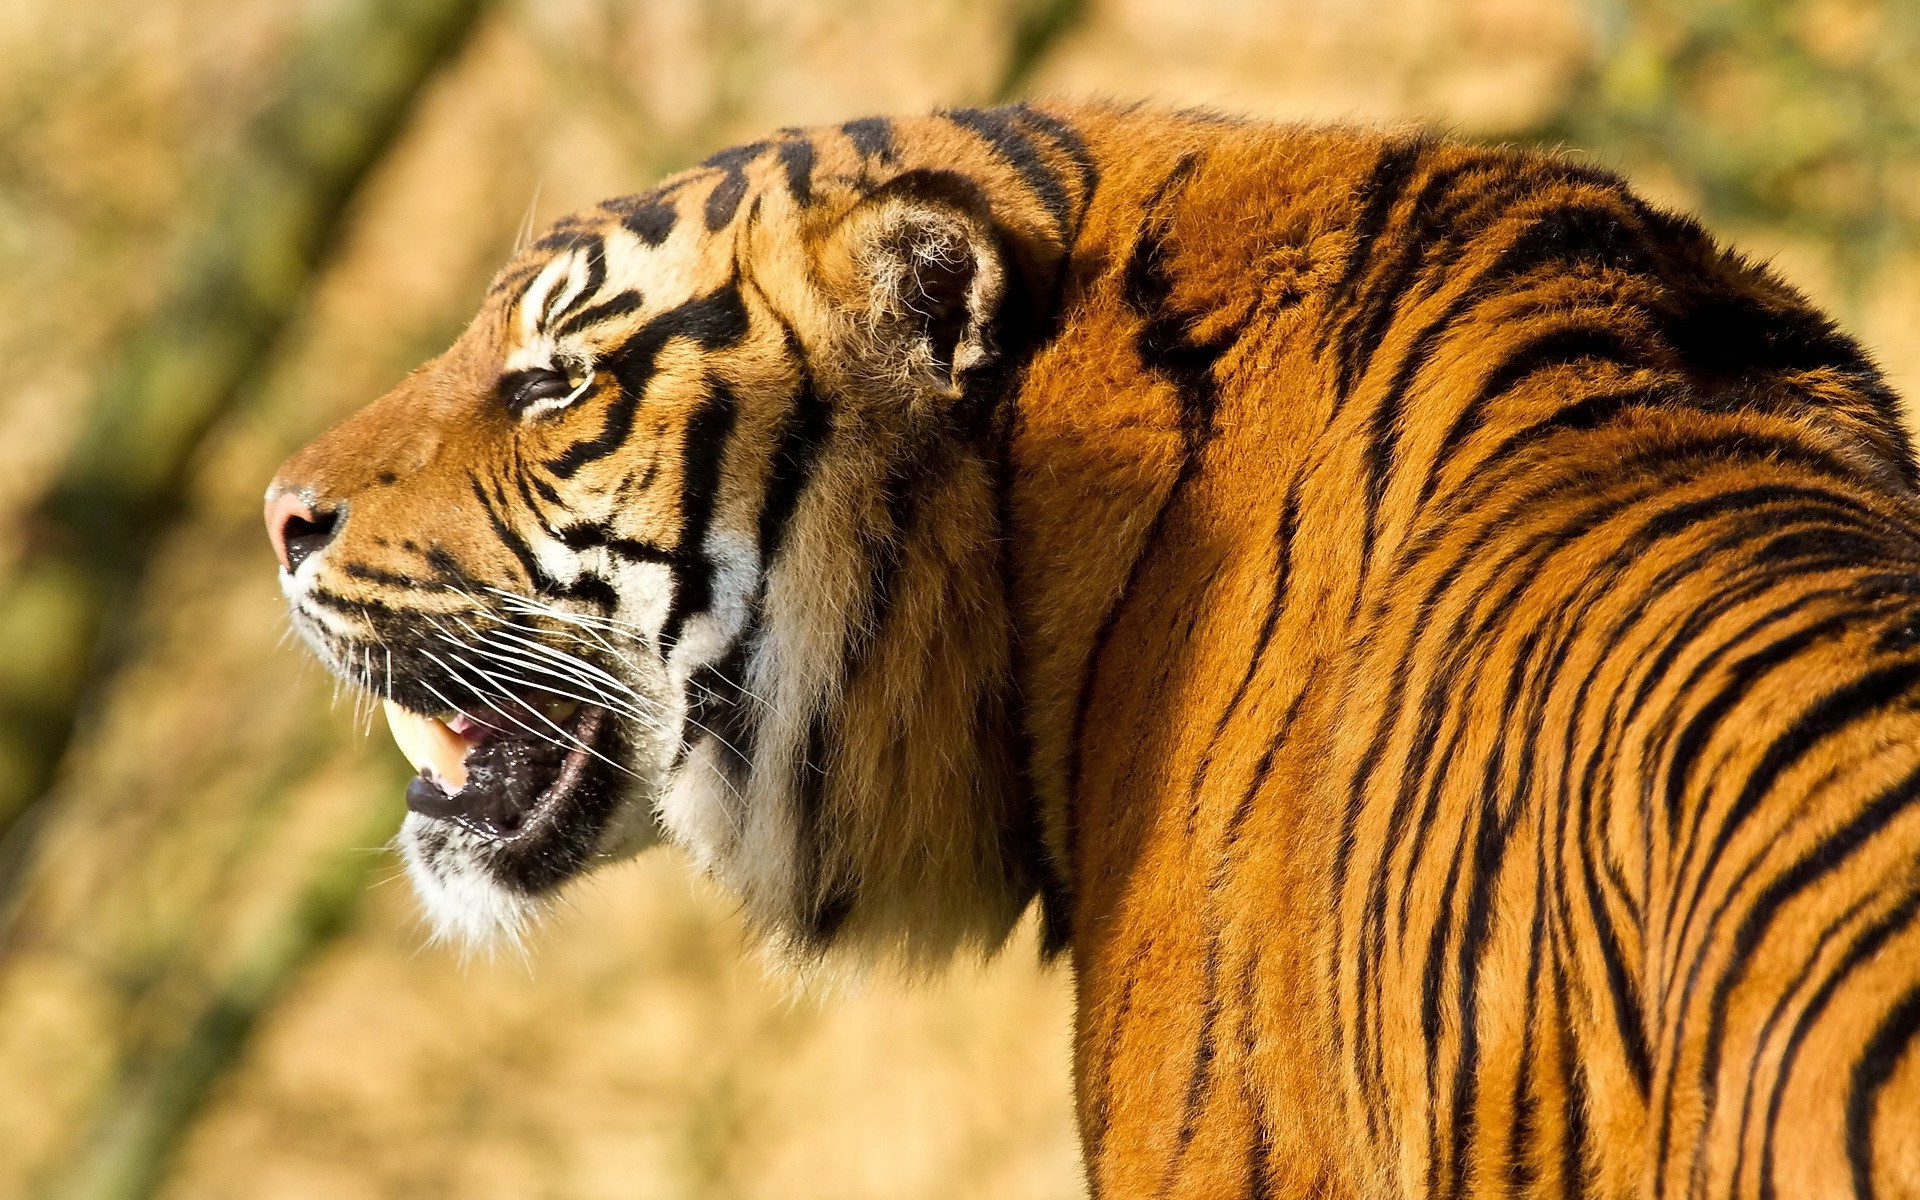 Tiger HD Photos | Wild Animal Wallpapers Images Pictures Download